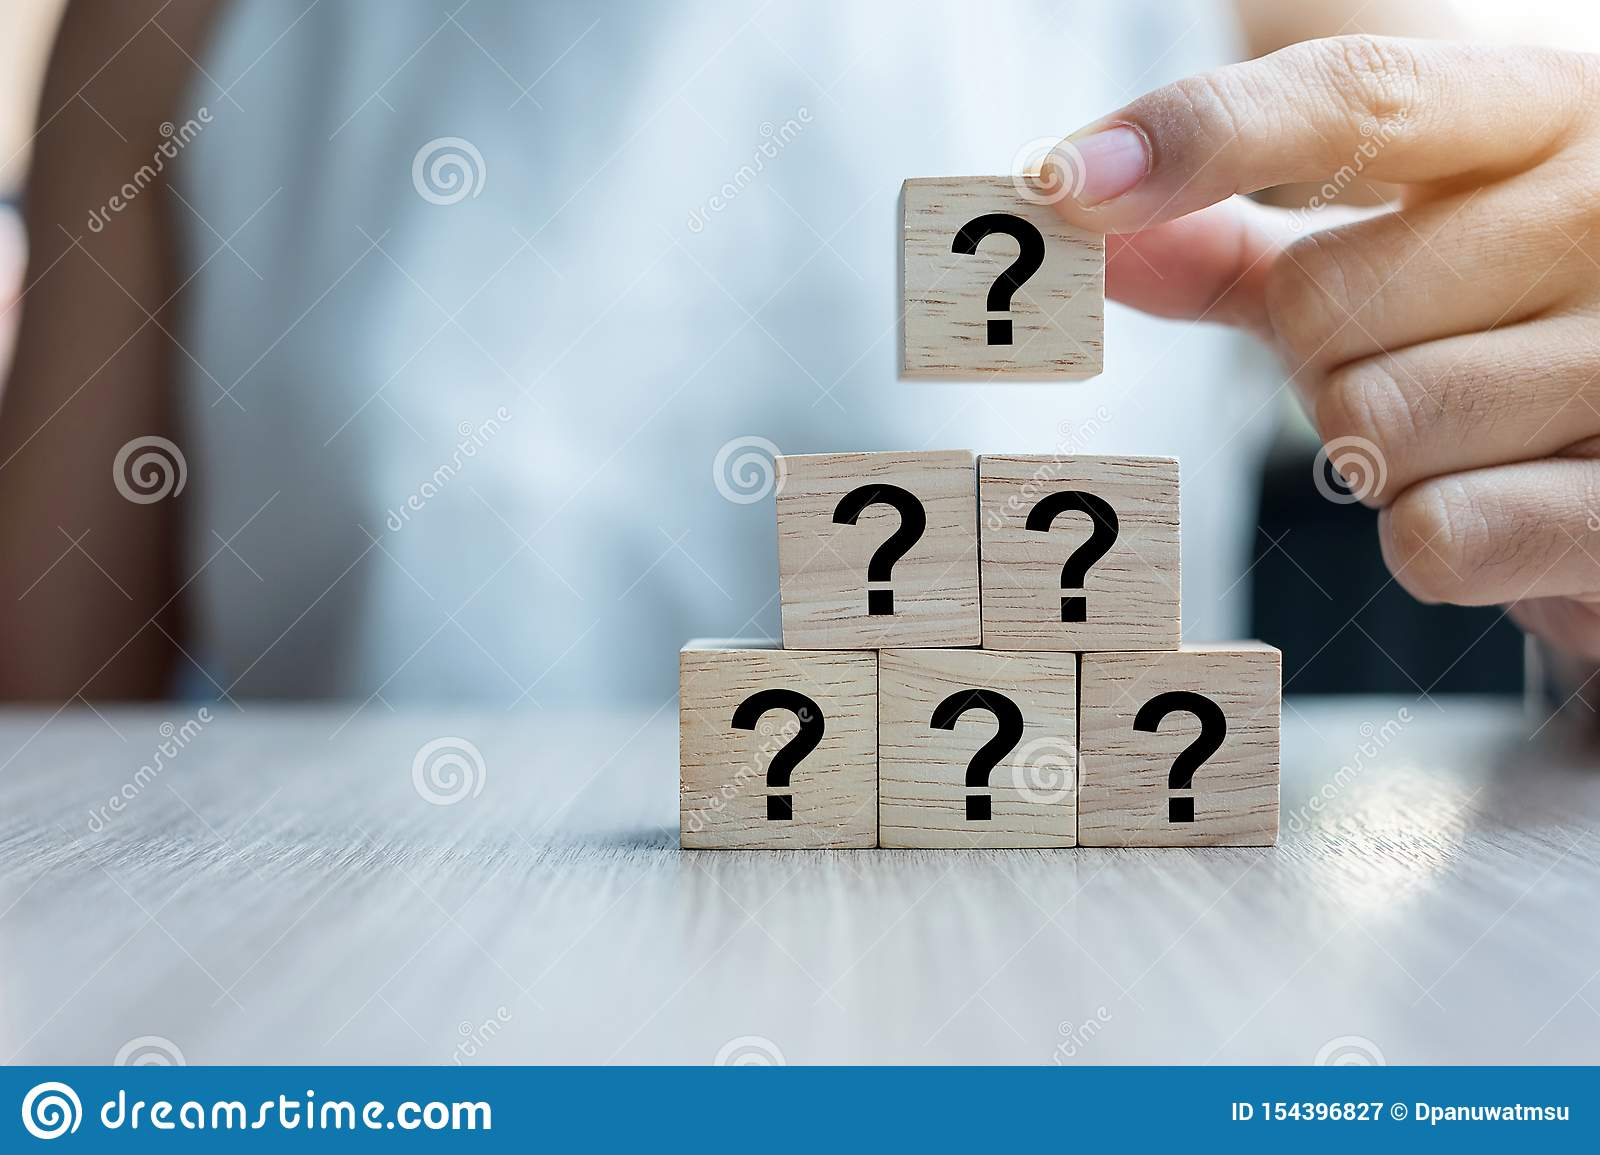 Businesswoman hand placing or pulling Questions Mark ? word with wooden cube block on the building. FAQ frequency asked